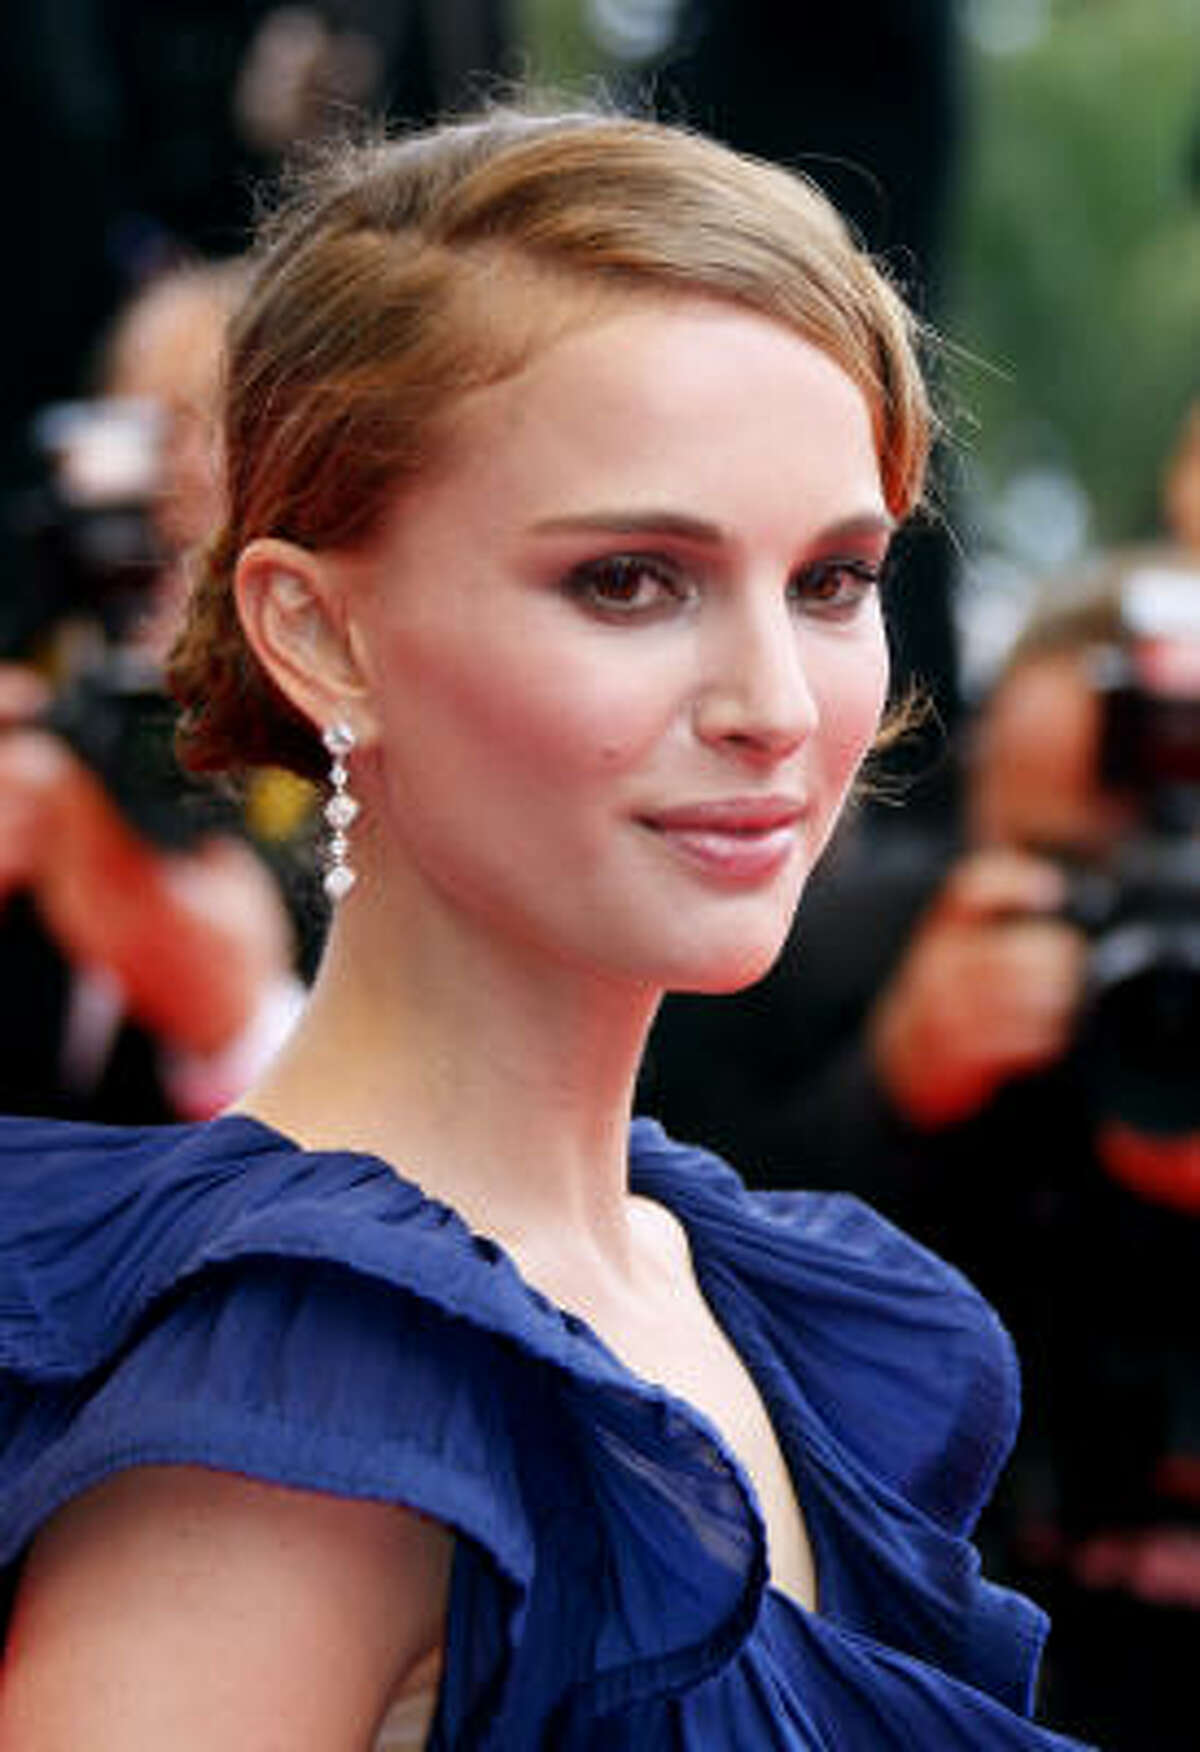 Actress Natalie Portman. Read: Is the geek now the big man on campus?